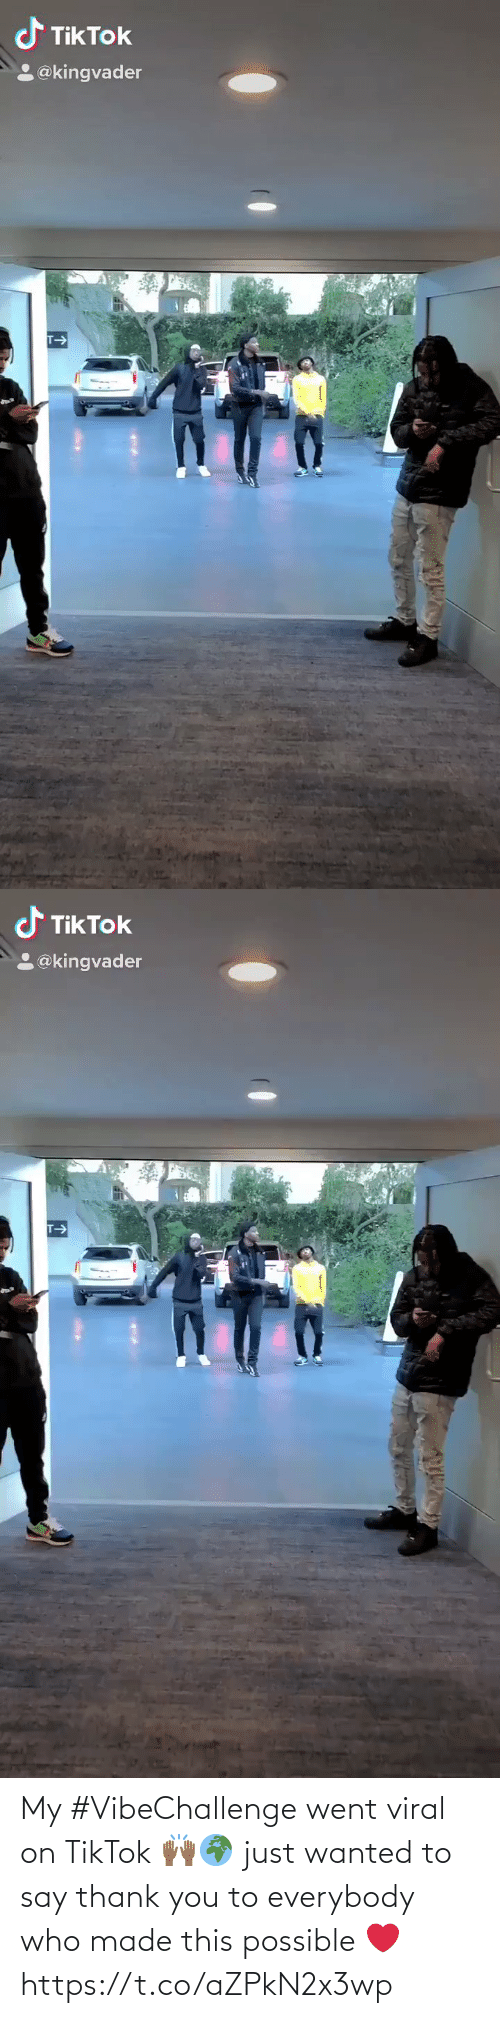 Just Wanted: My #VibeChallenge went viral on TikTok 🙌🏾🌍 just wanted to say thank you to everybody who made this possible ❤️ https://t.co/aZPkN2x3wp